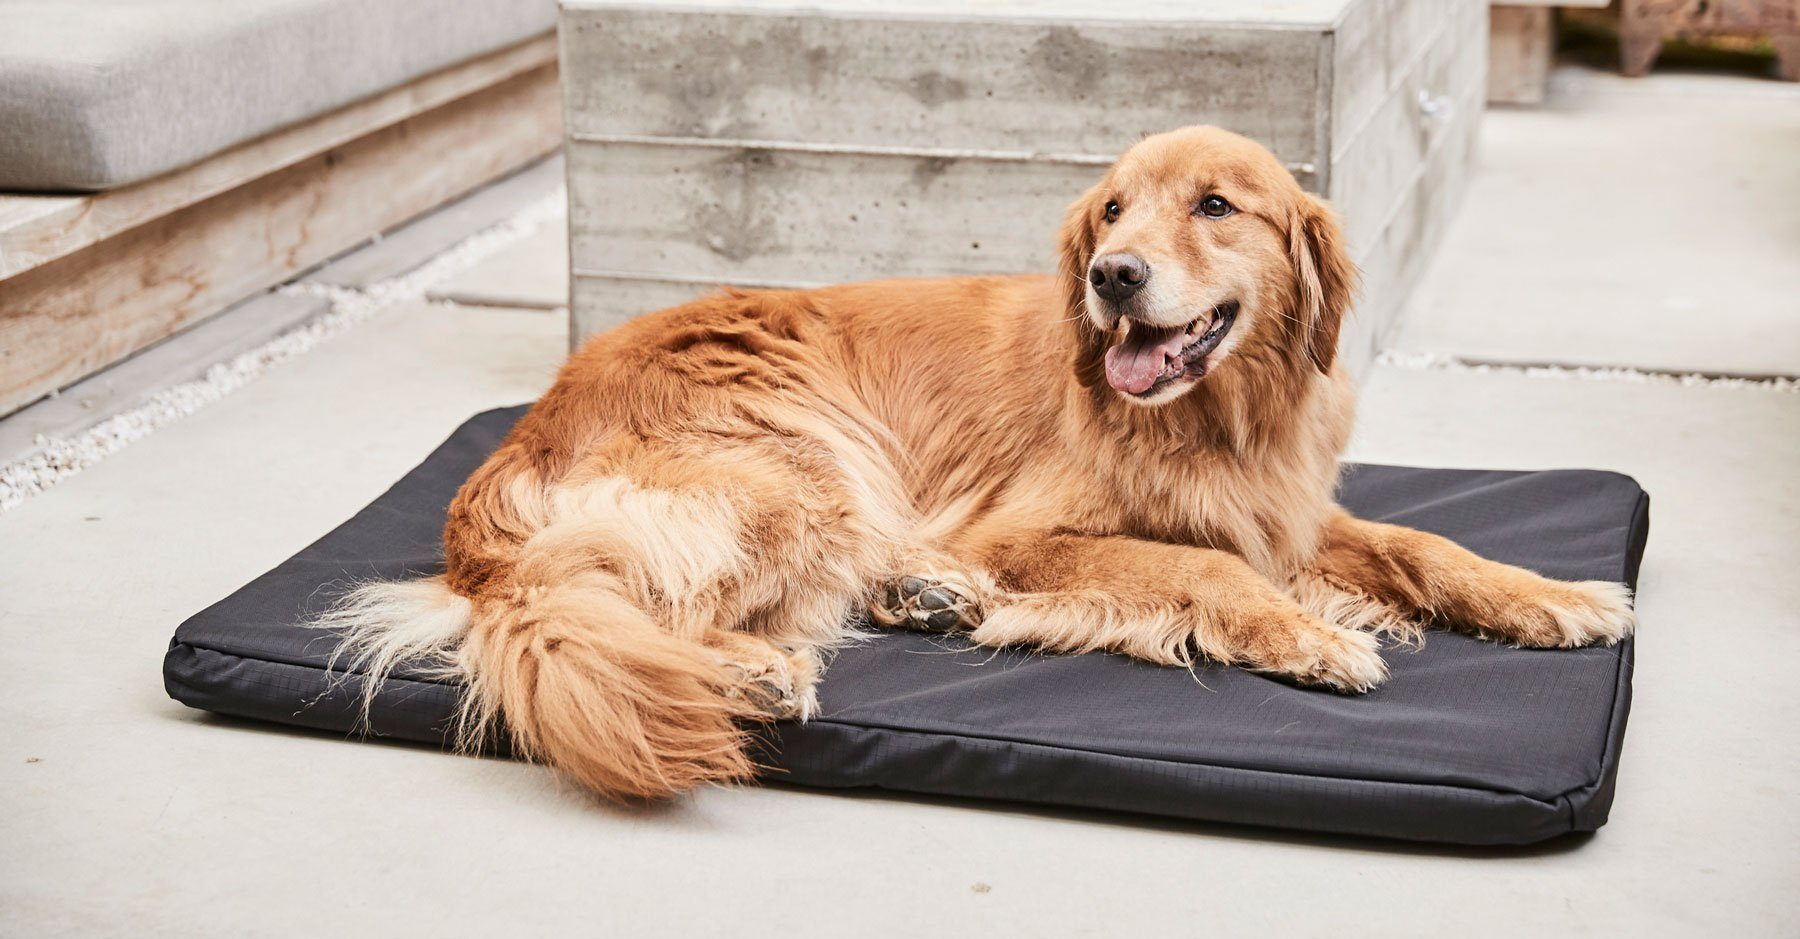 A golden retriever lying on a black rectangular crate pad